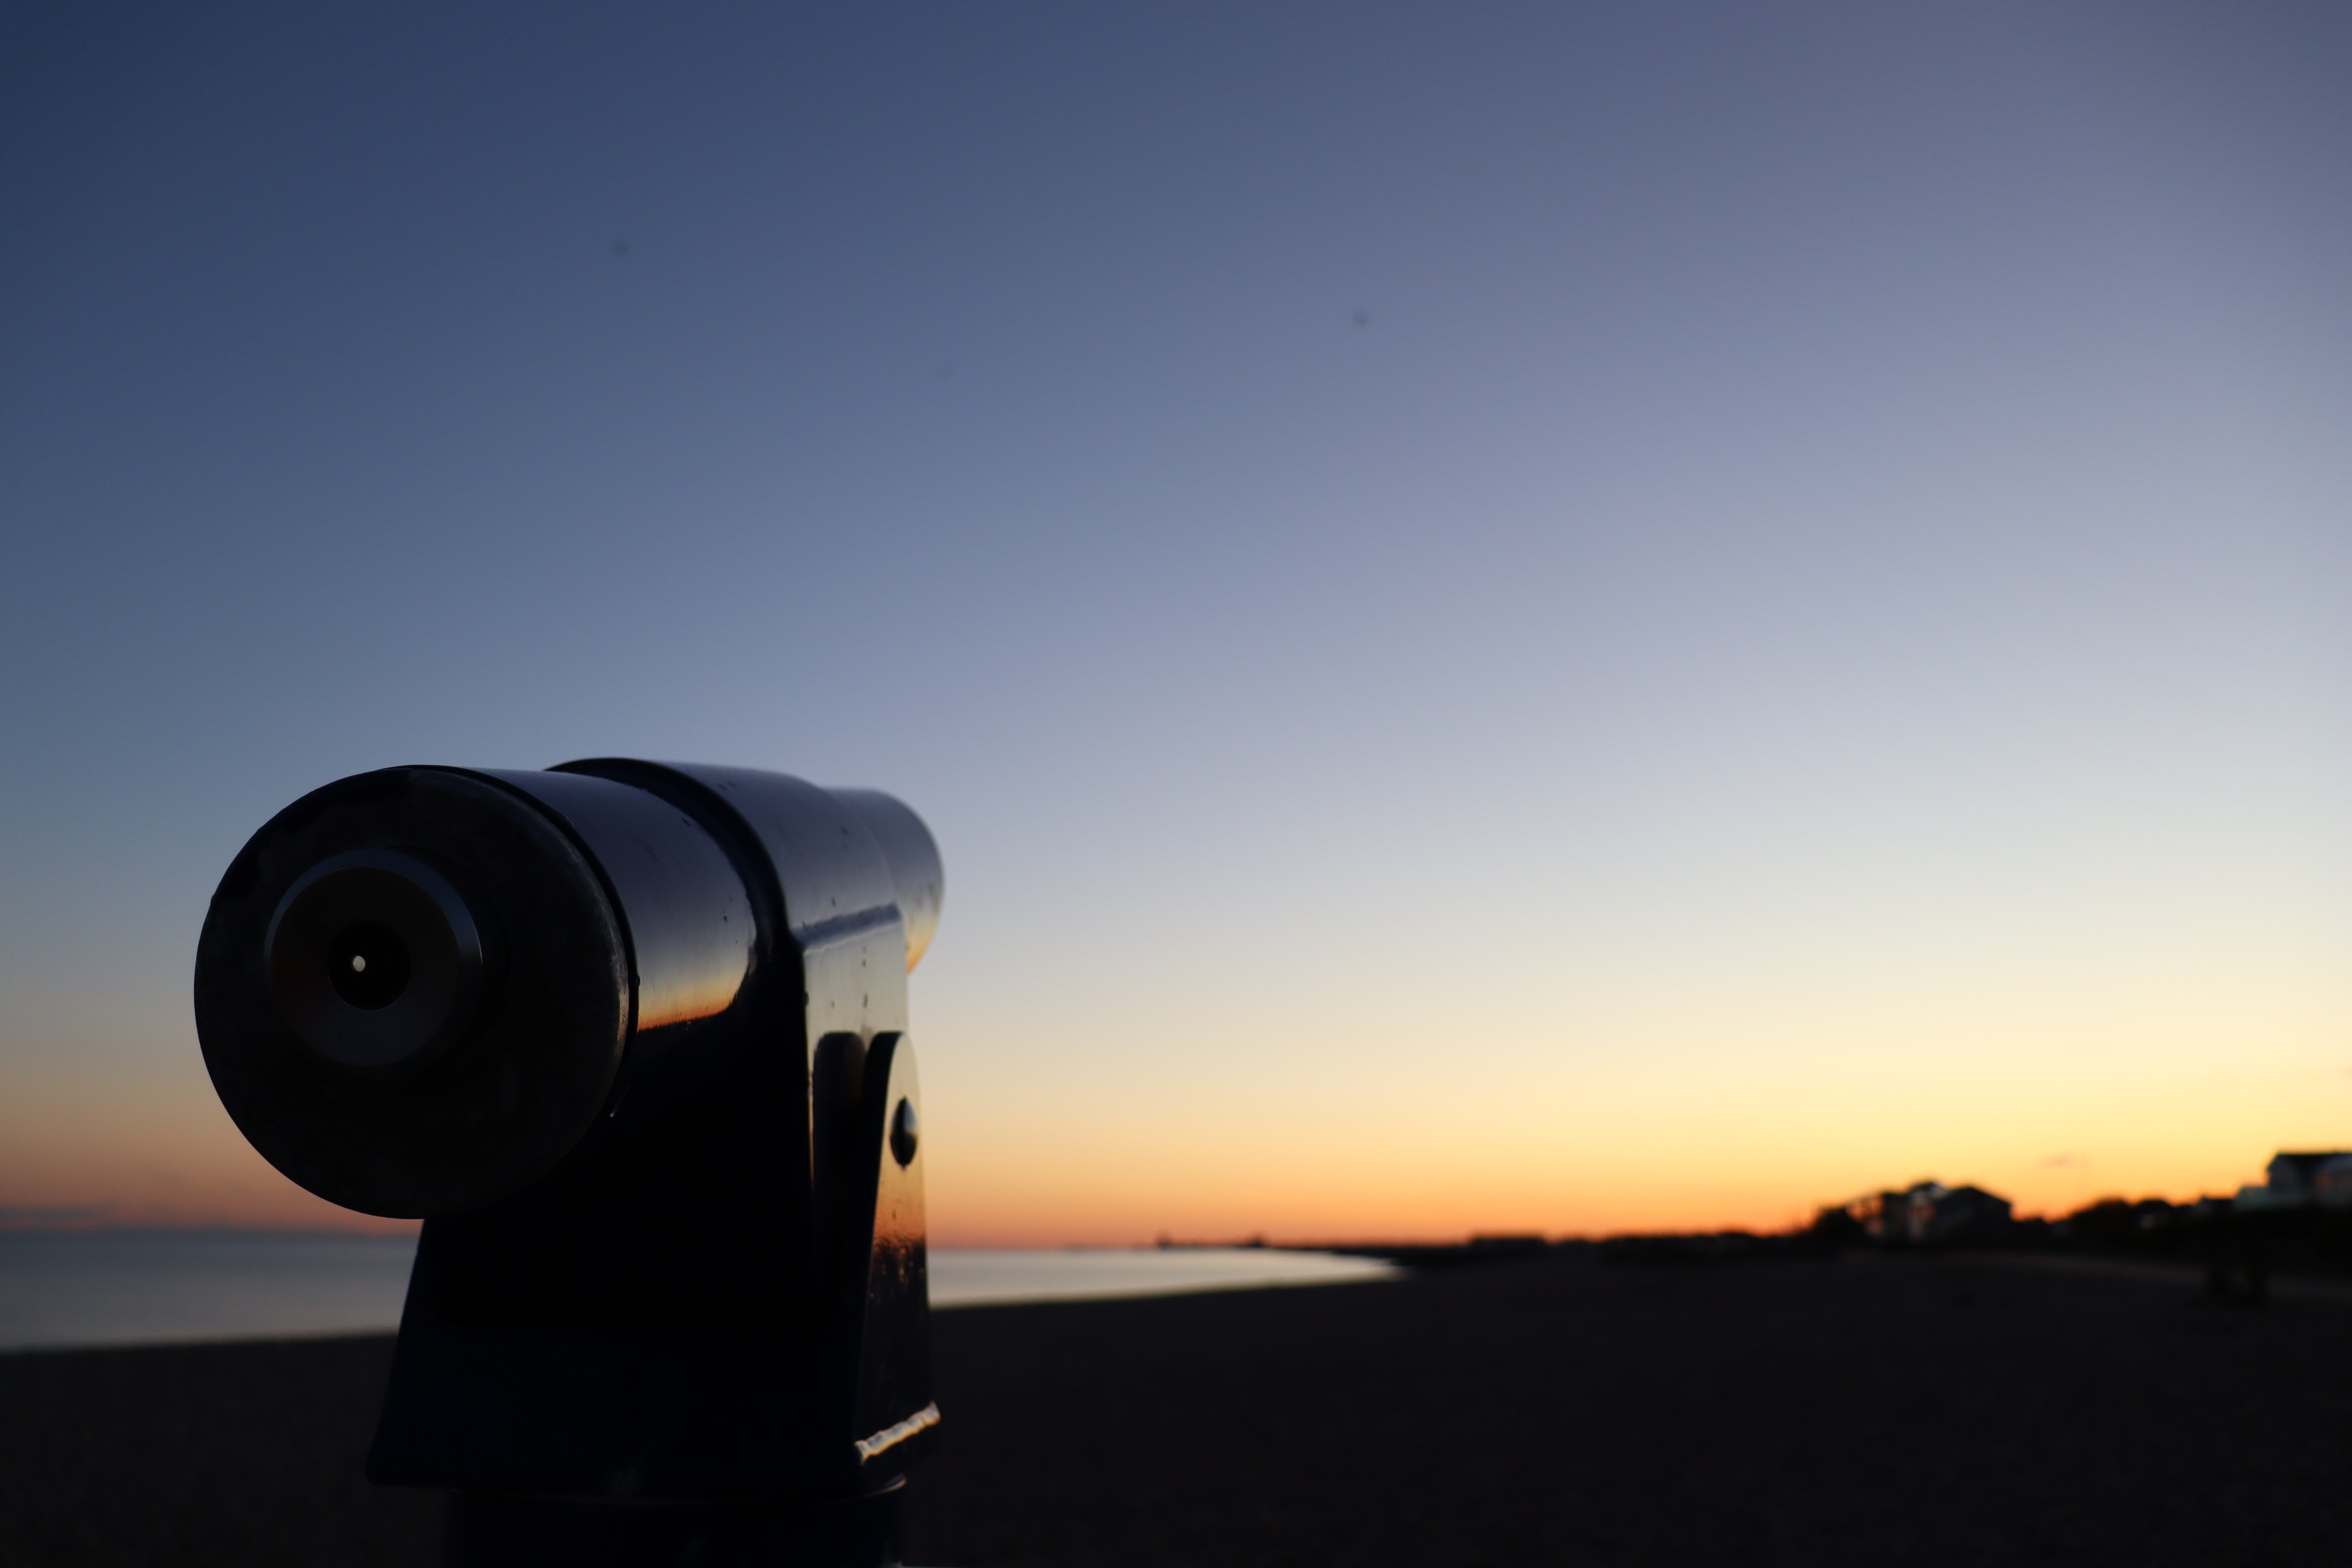 A fixed telescope pointing towards the out of focus sunset over the sea.